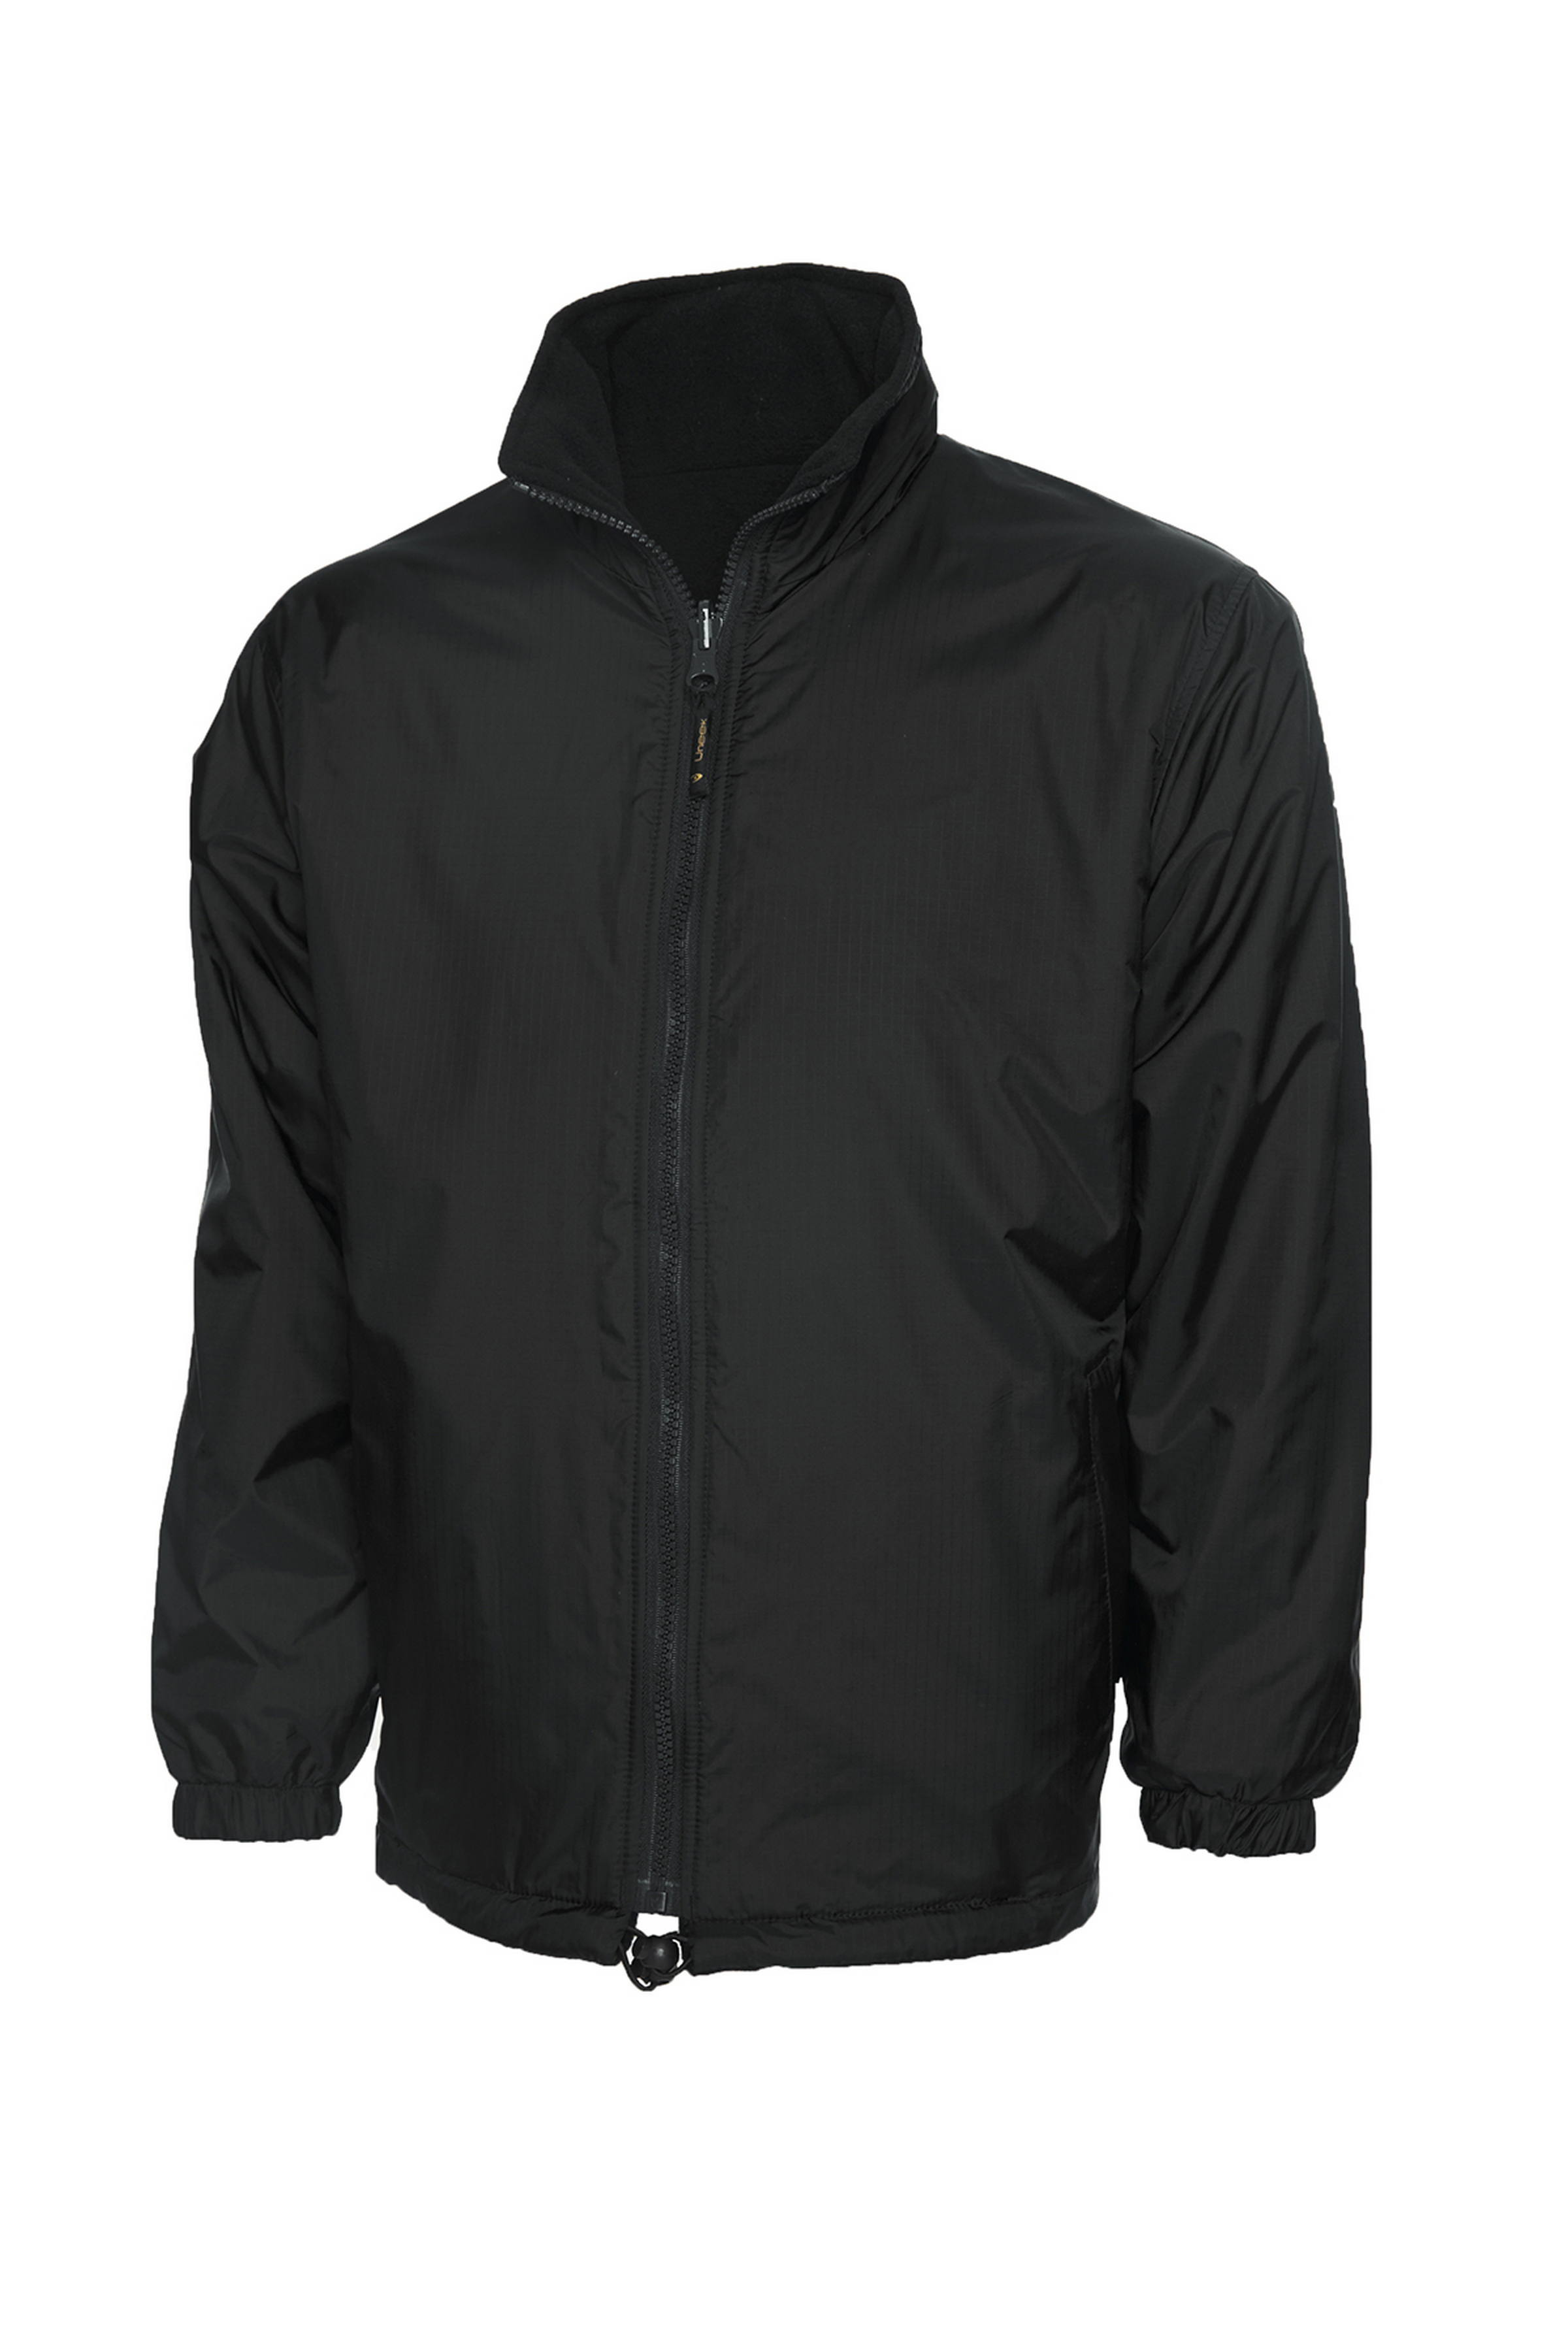 605 Premium Reversible Fleece Jacket